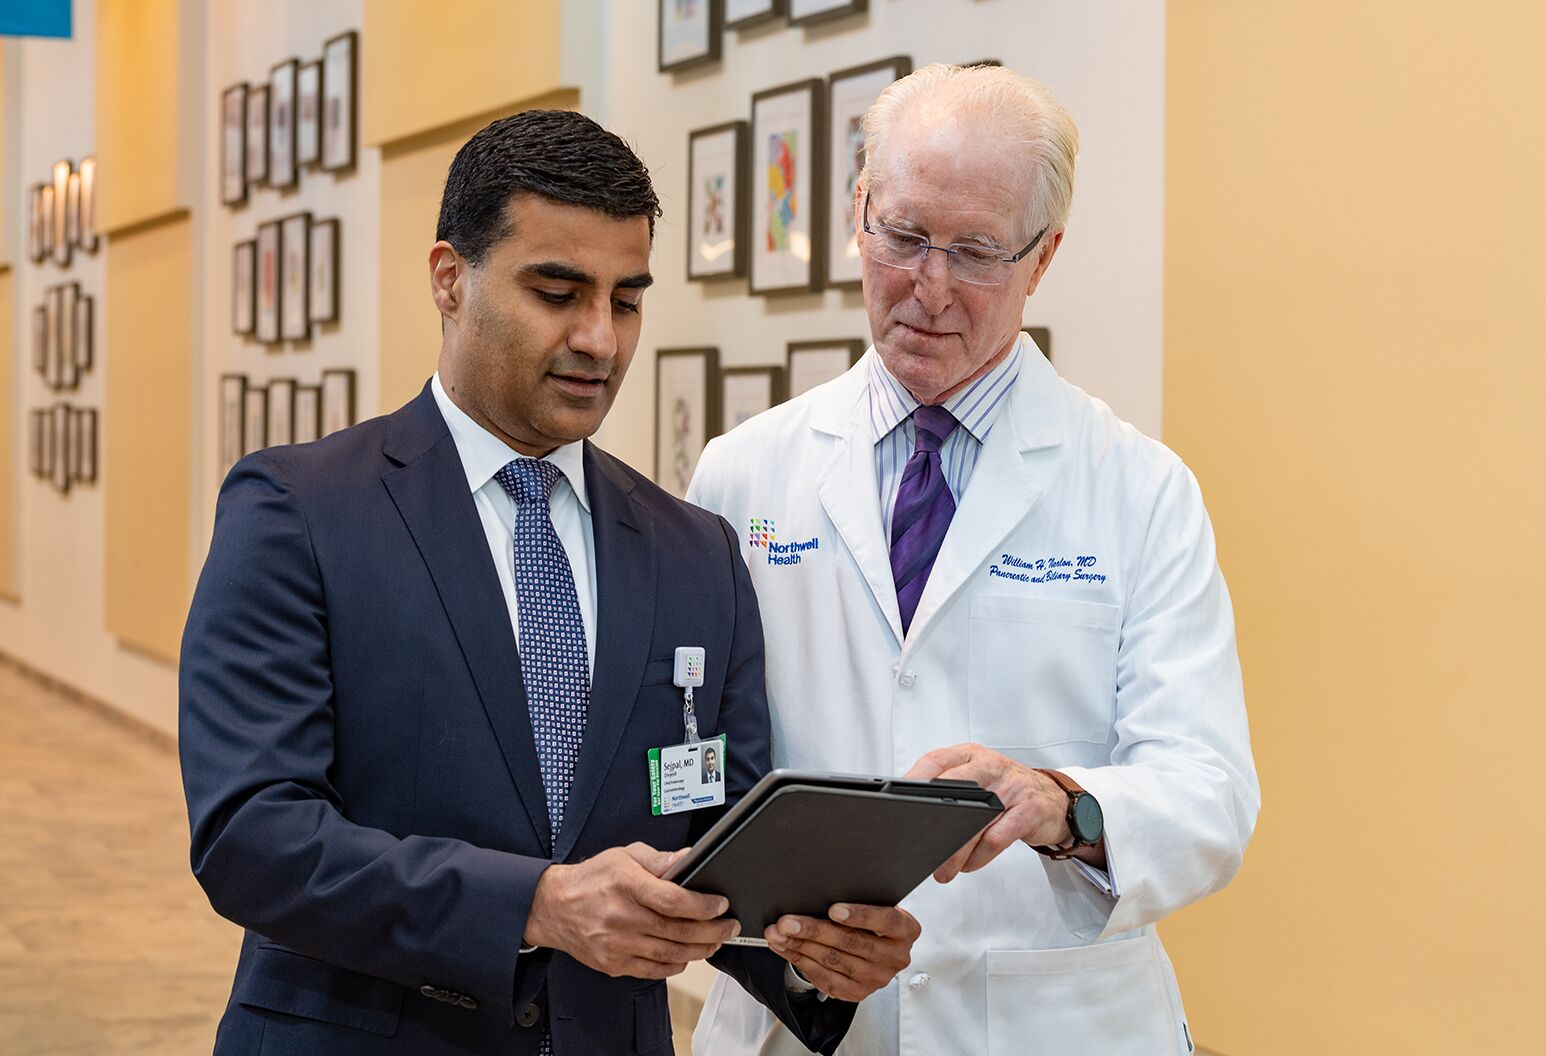 Two doctors having a conversation looking at a tablet